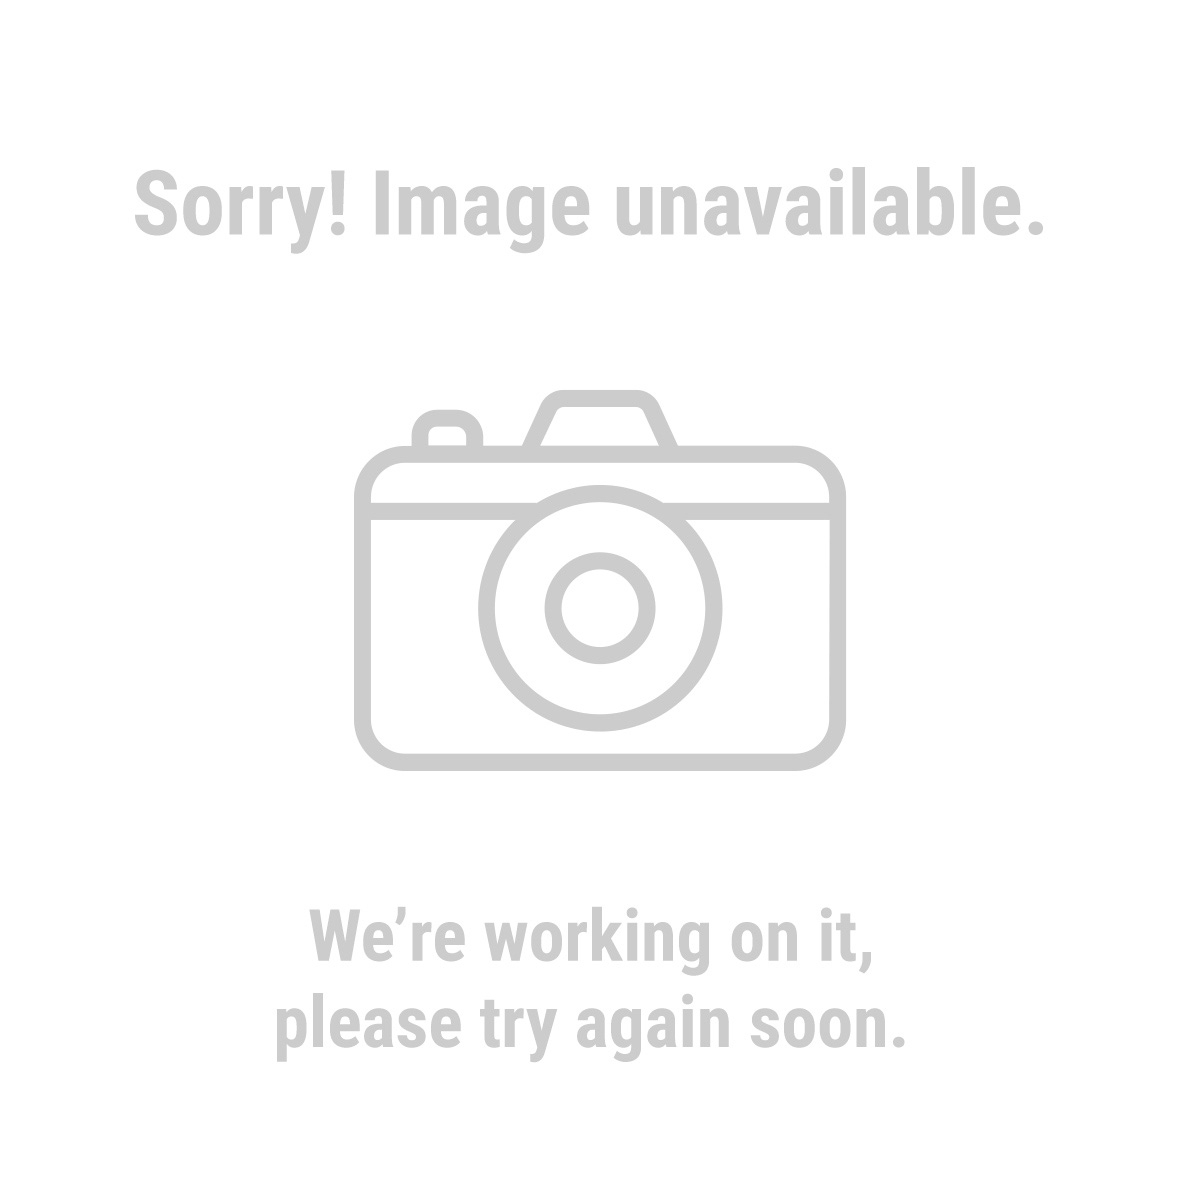 TailGator 63025 900 Peak/700 Running Watts, 2 HP (63cc) 2 Cycle Gas Generator EPA/CARB